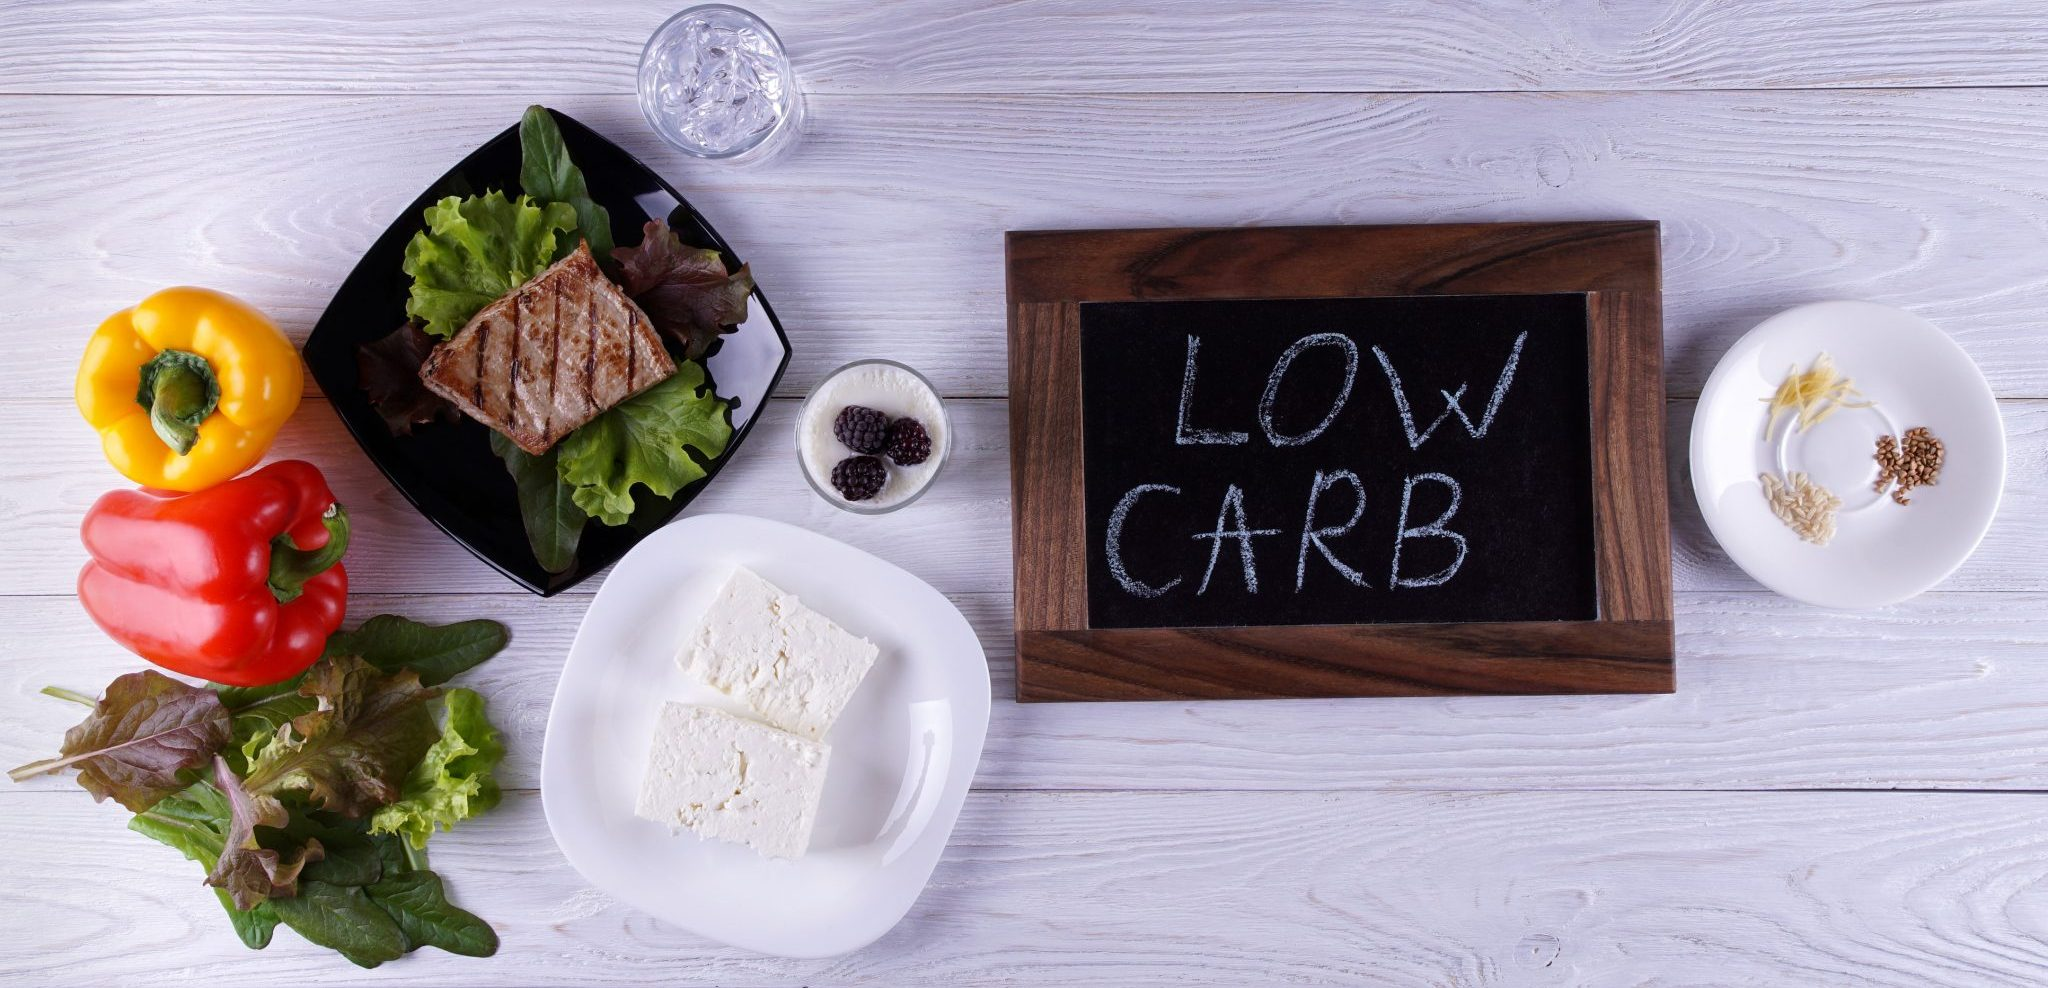 Keto, Paleo, Atkins…What Happens When You Eat Low-Carb?